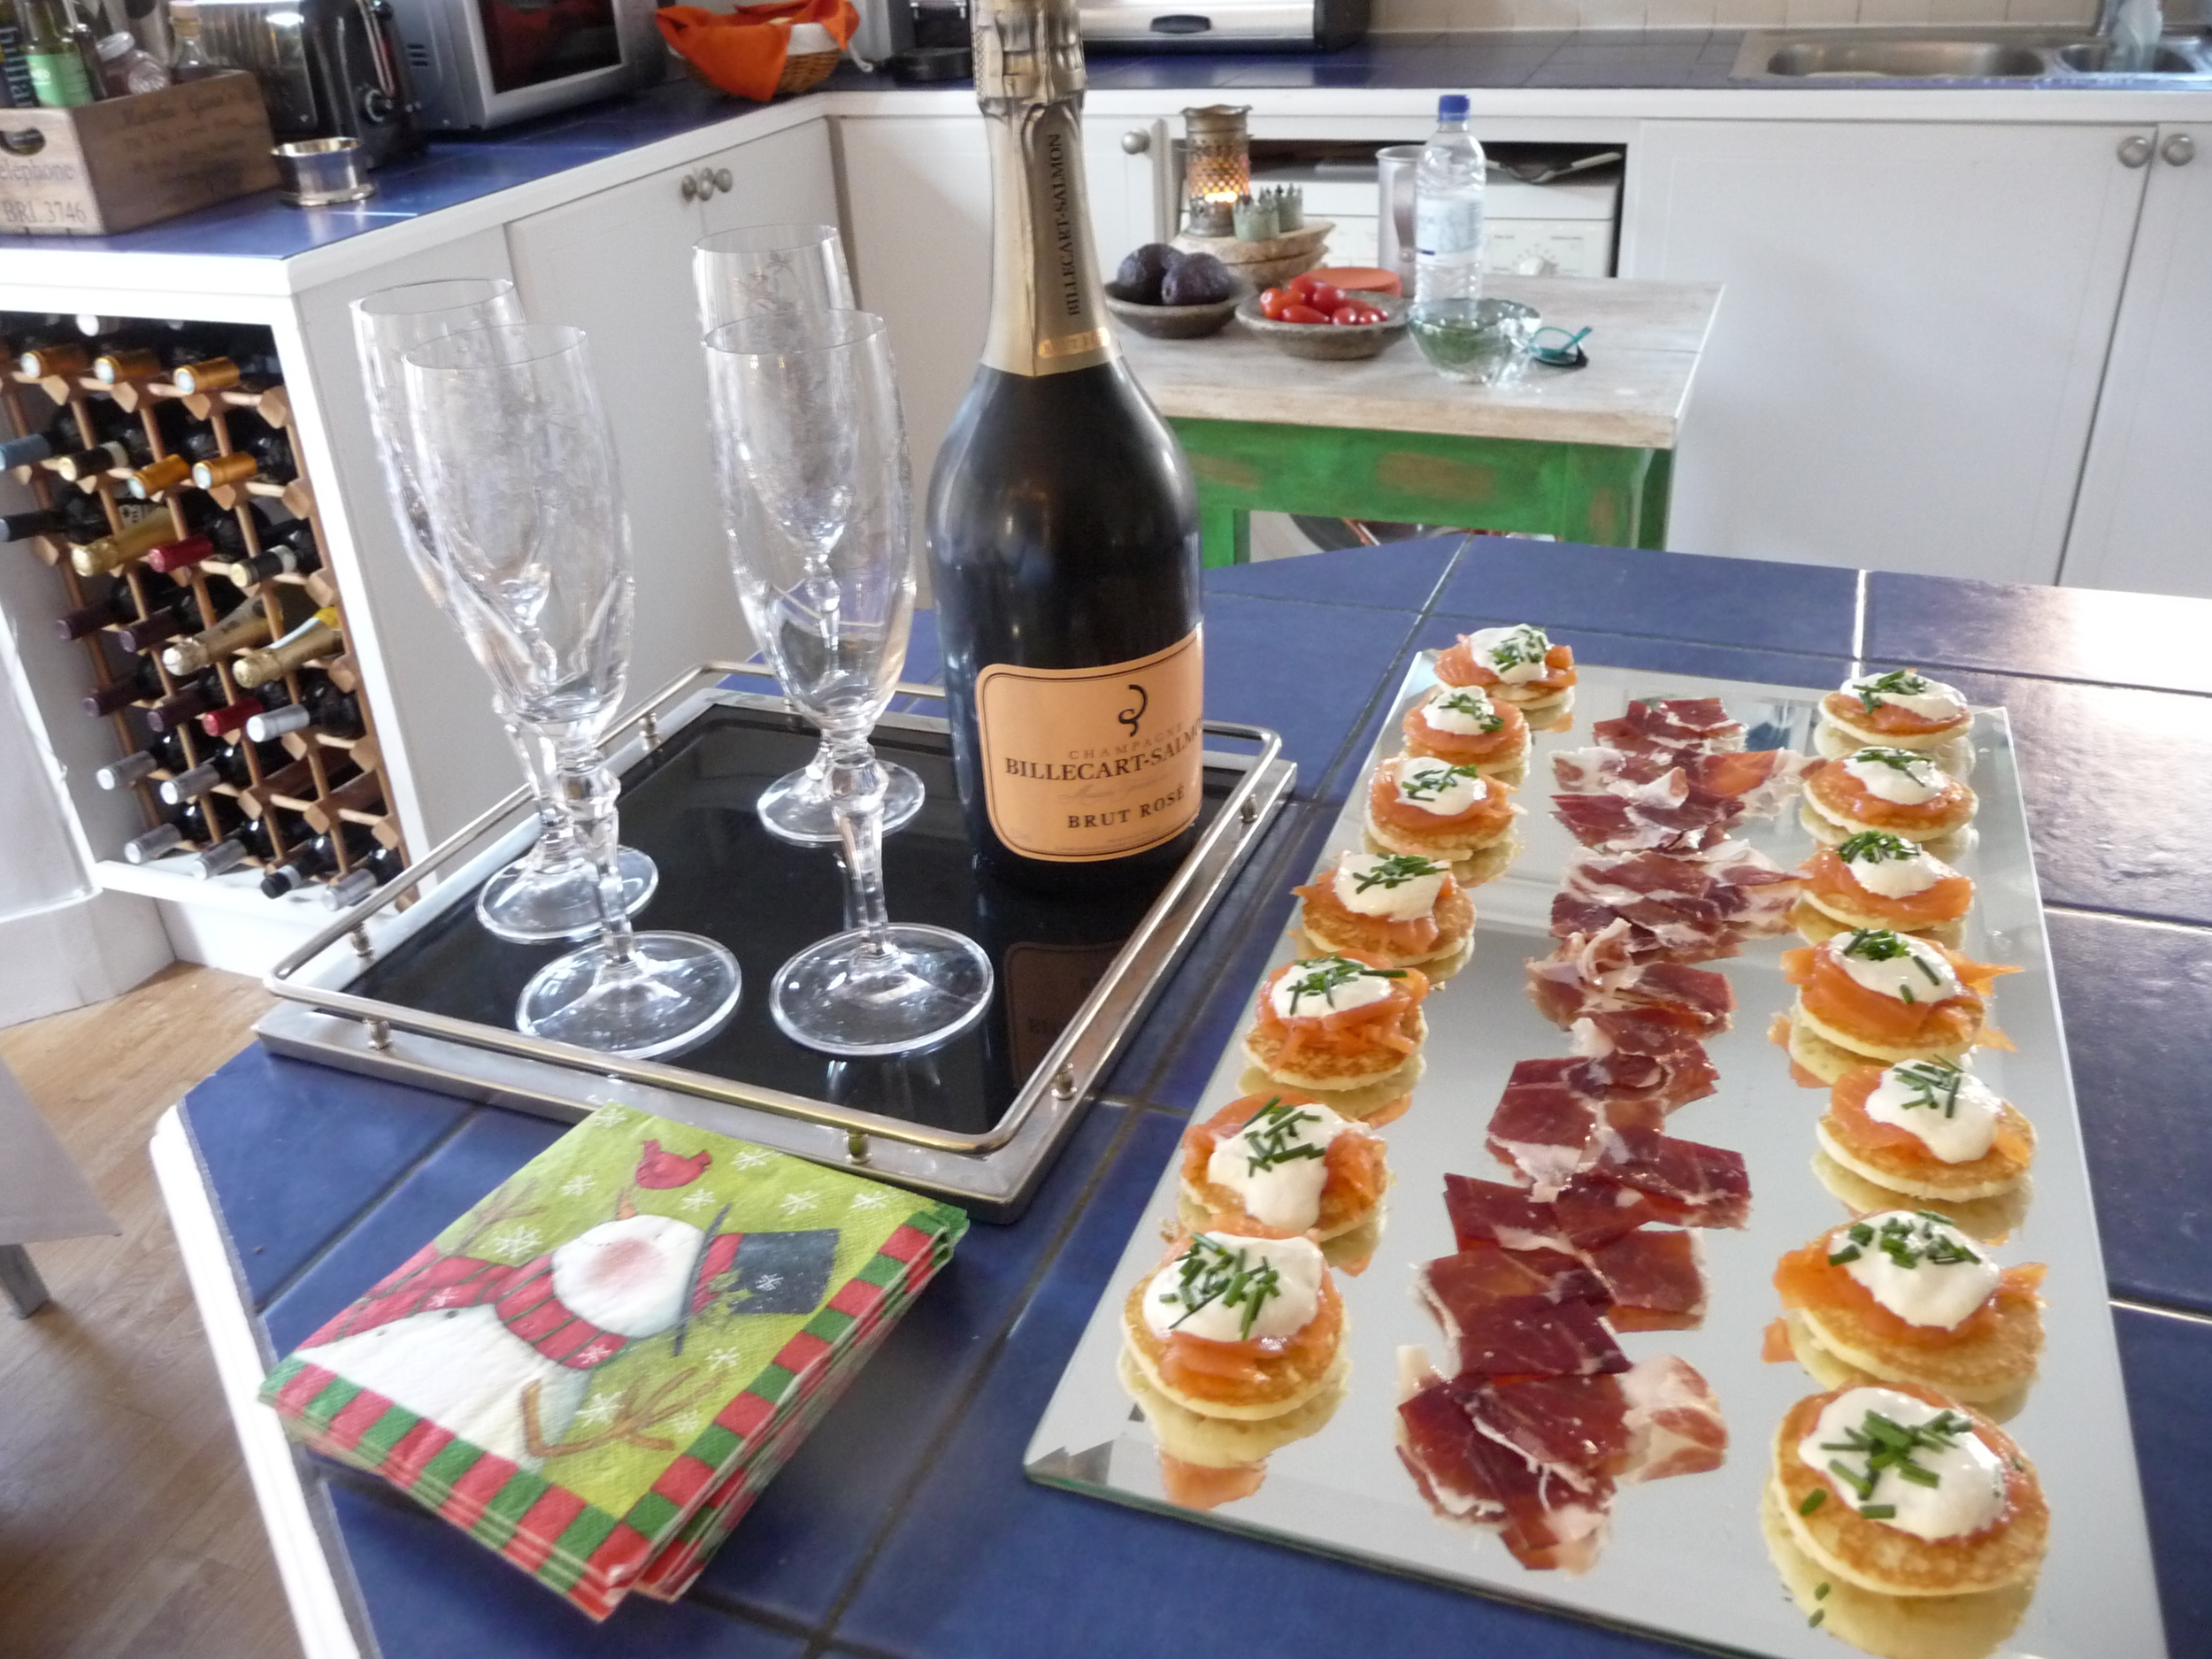 Smoked salmon blinis and Iberico ham with Billecart Salmon Rose champagne at noon